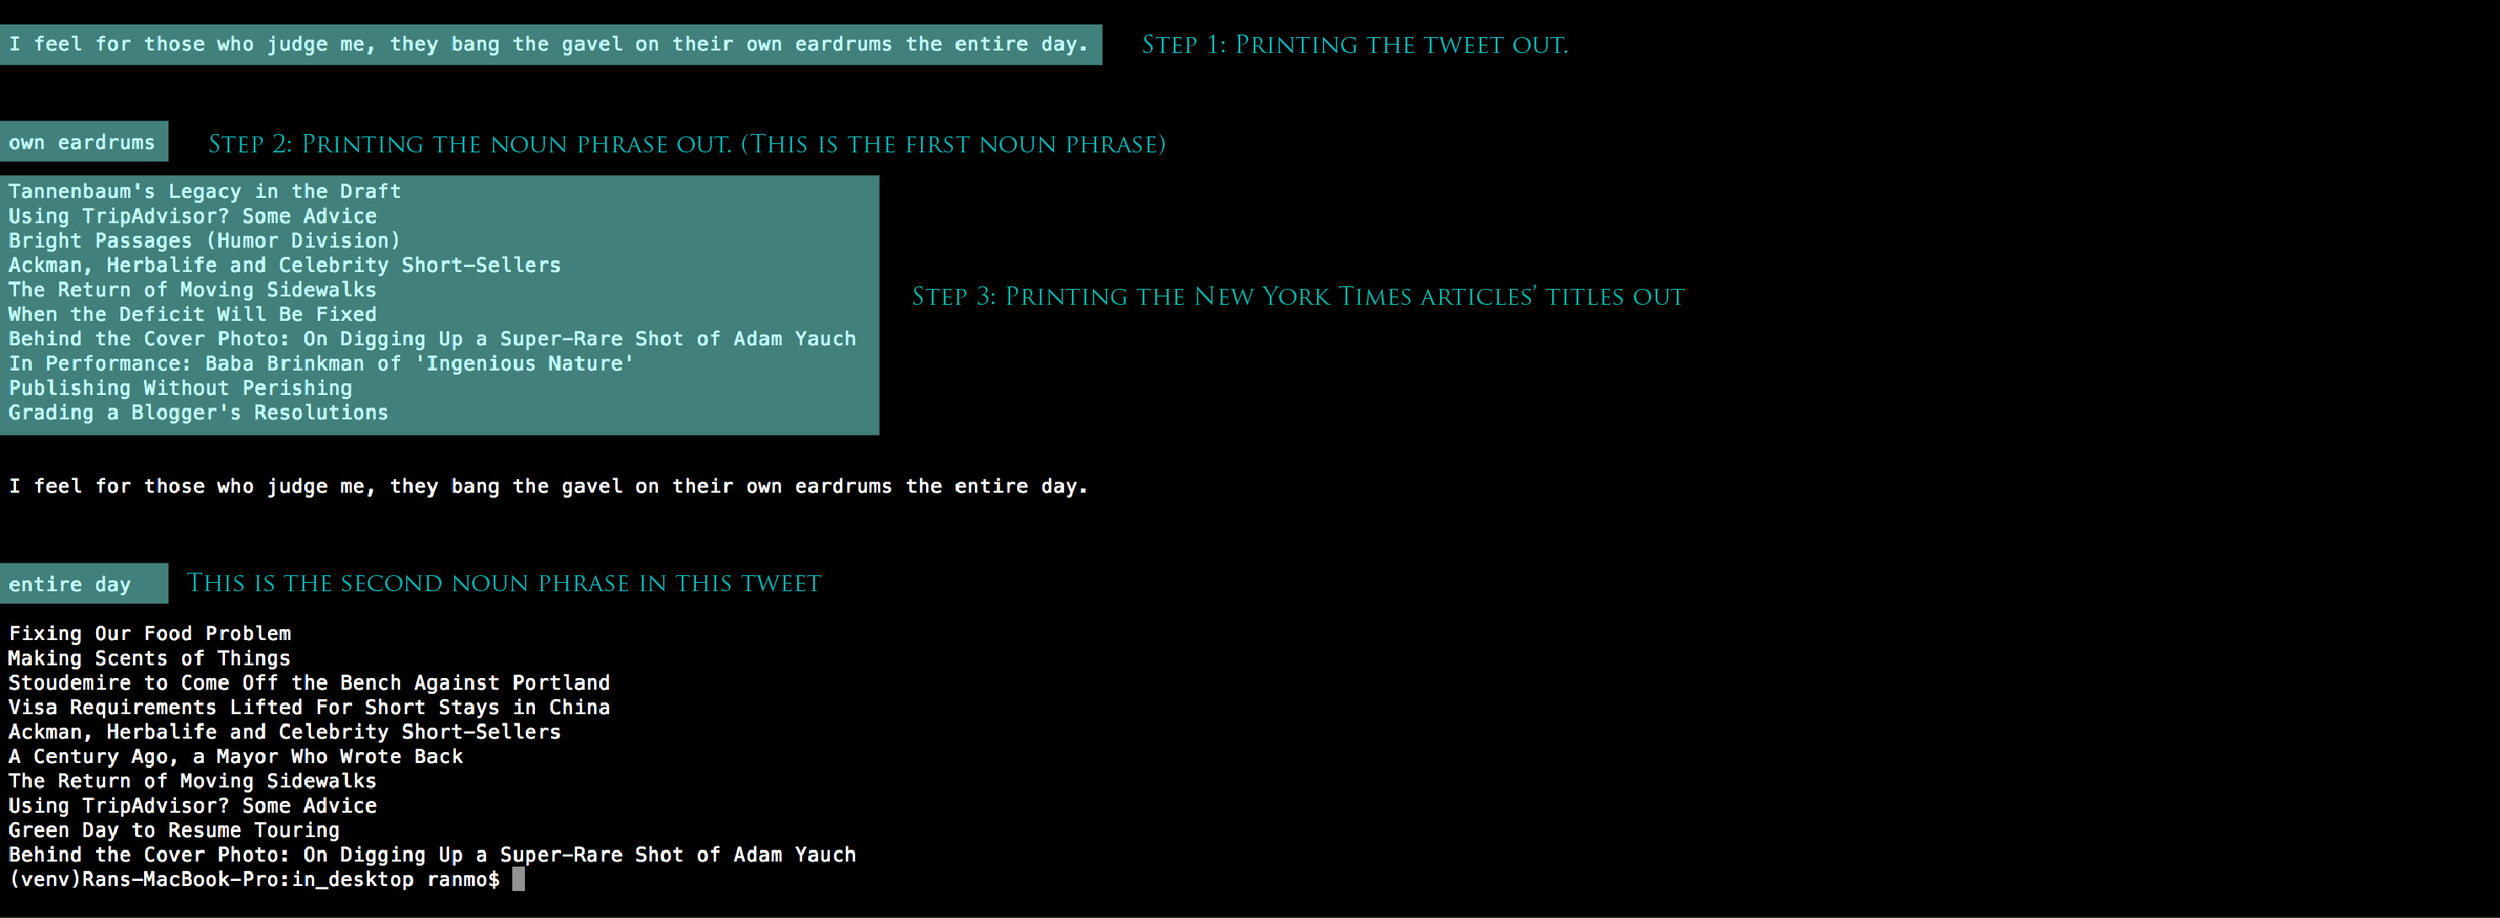 Testing in Terminal. The Python script prints different information out separately.